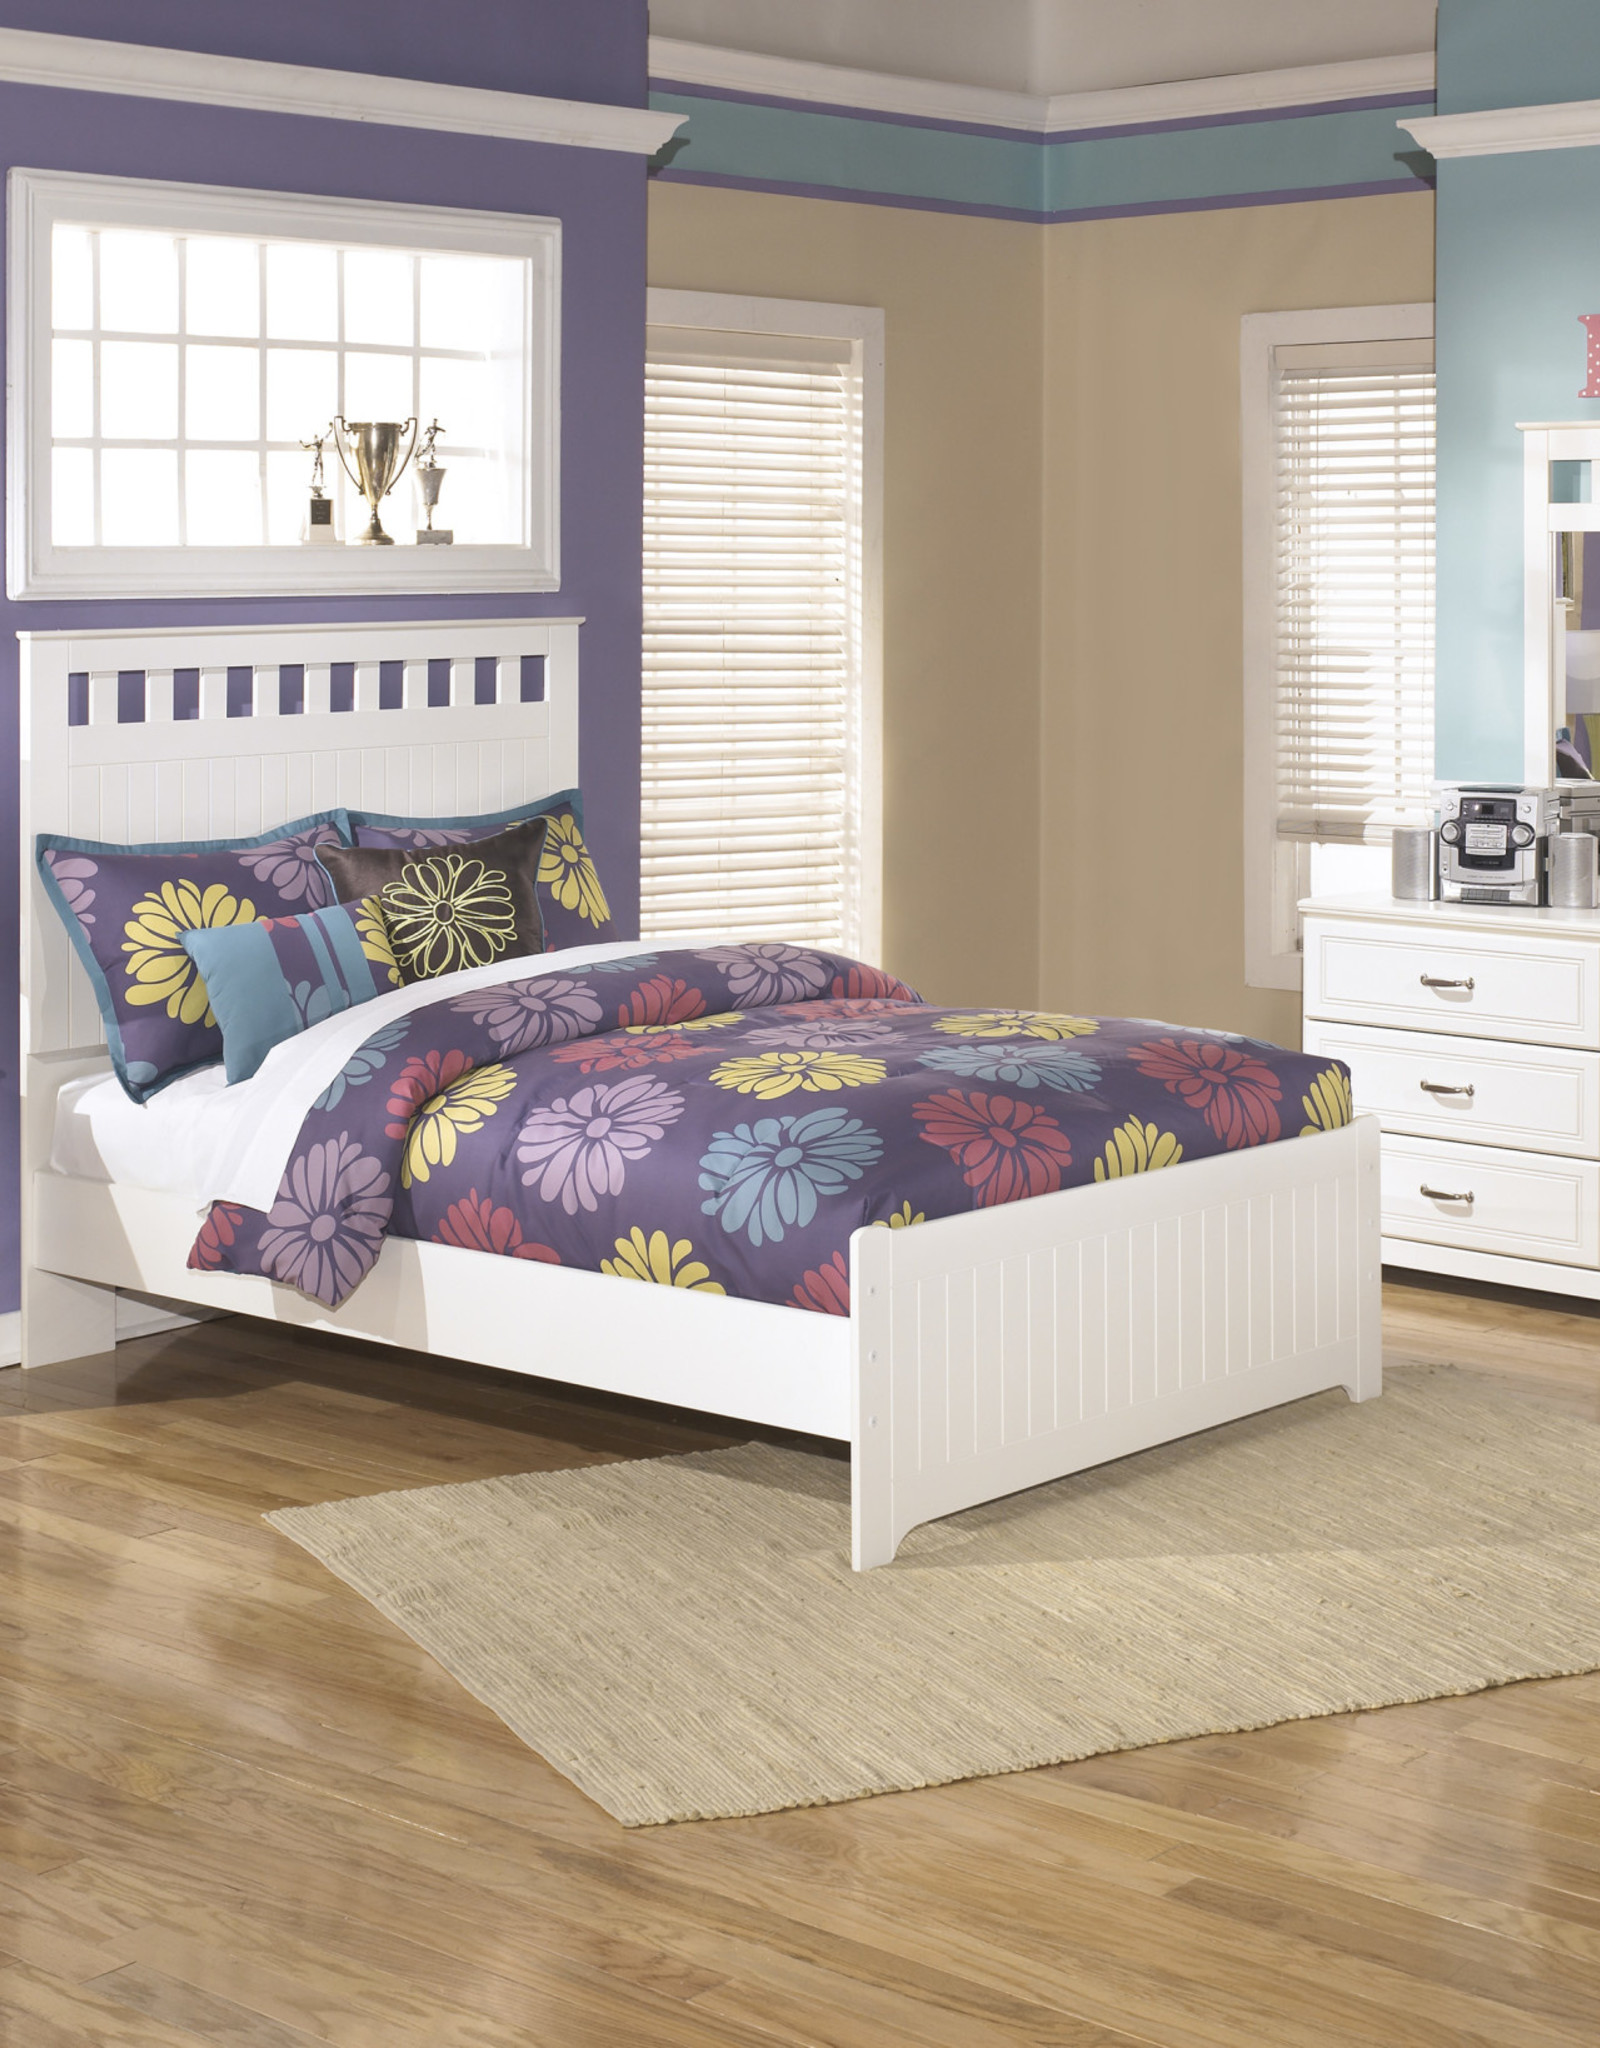 Lulu Bed (includes headboard, footboard, and rails)